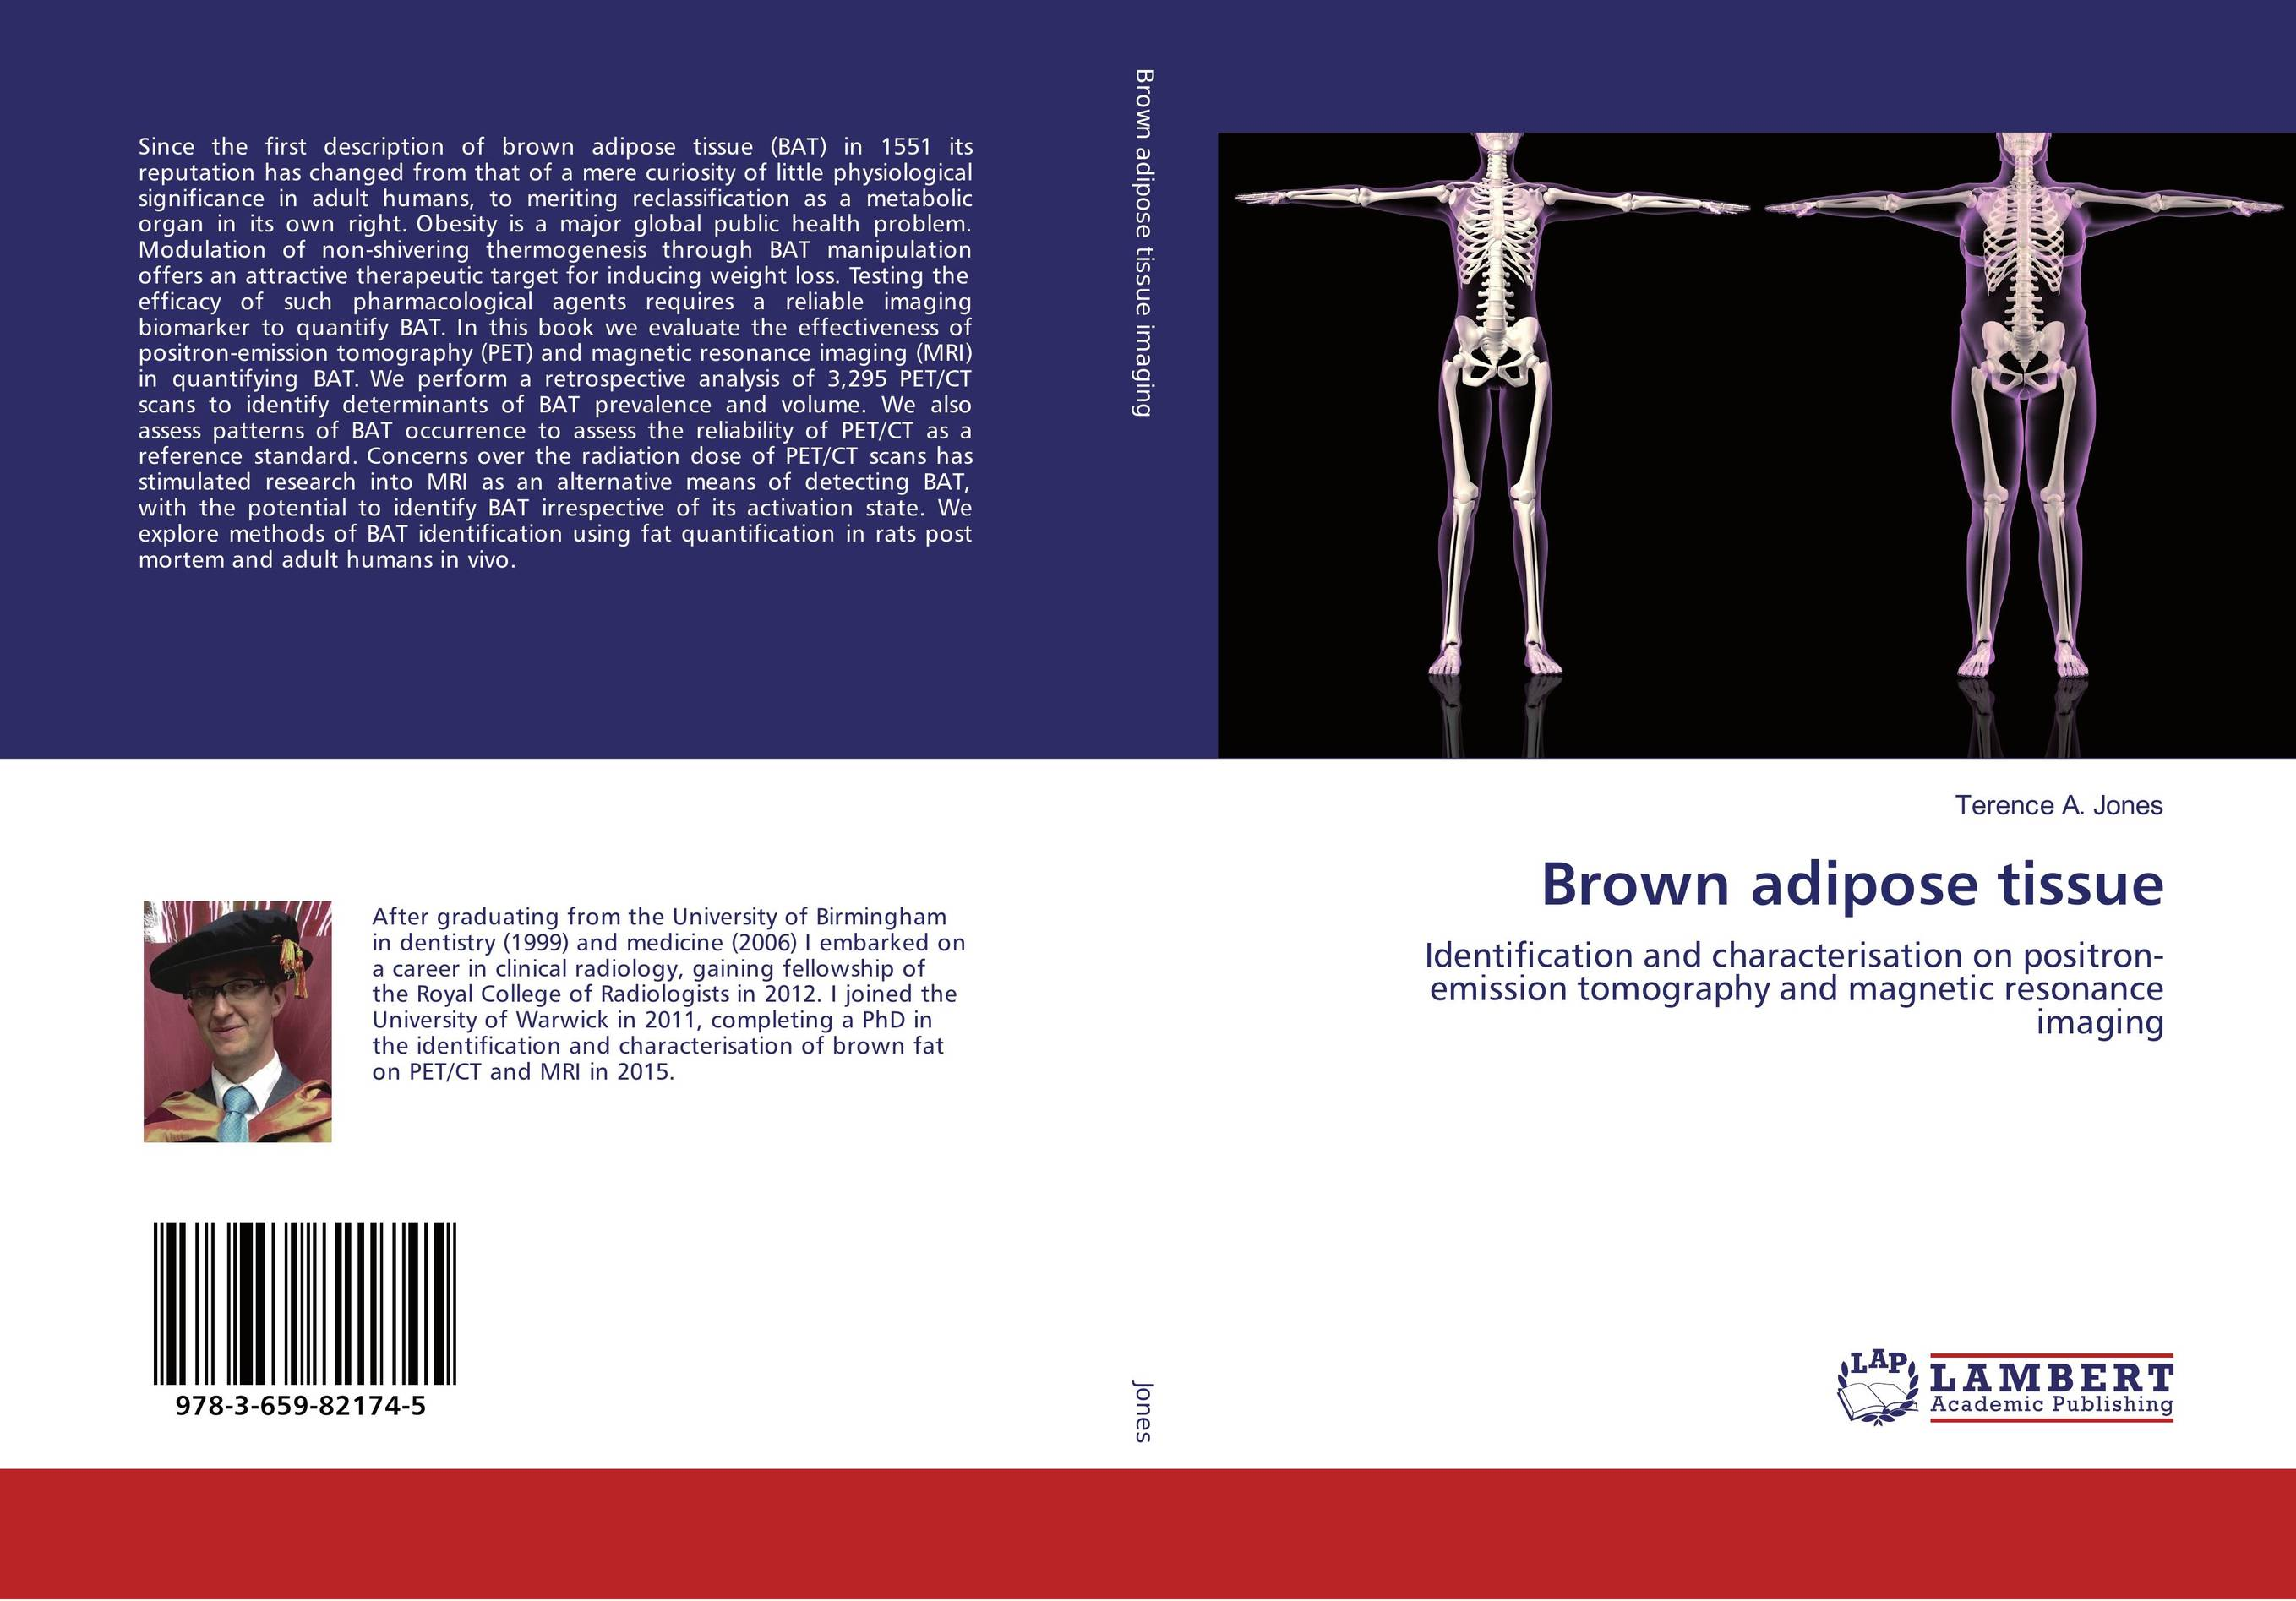 Brown adipose tissue structural organization of a leaf nosed bat